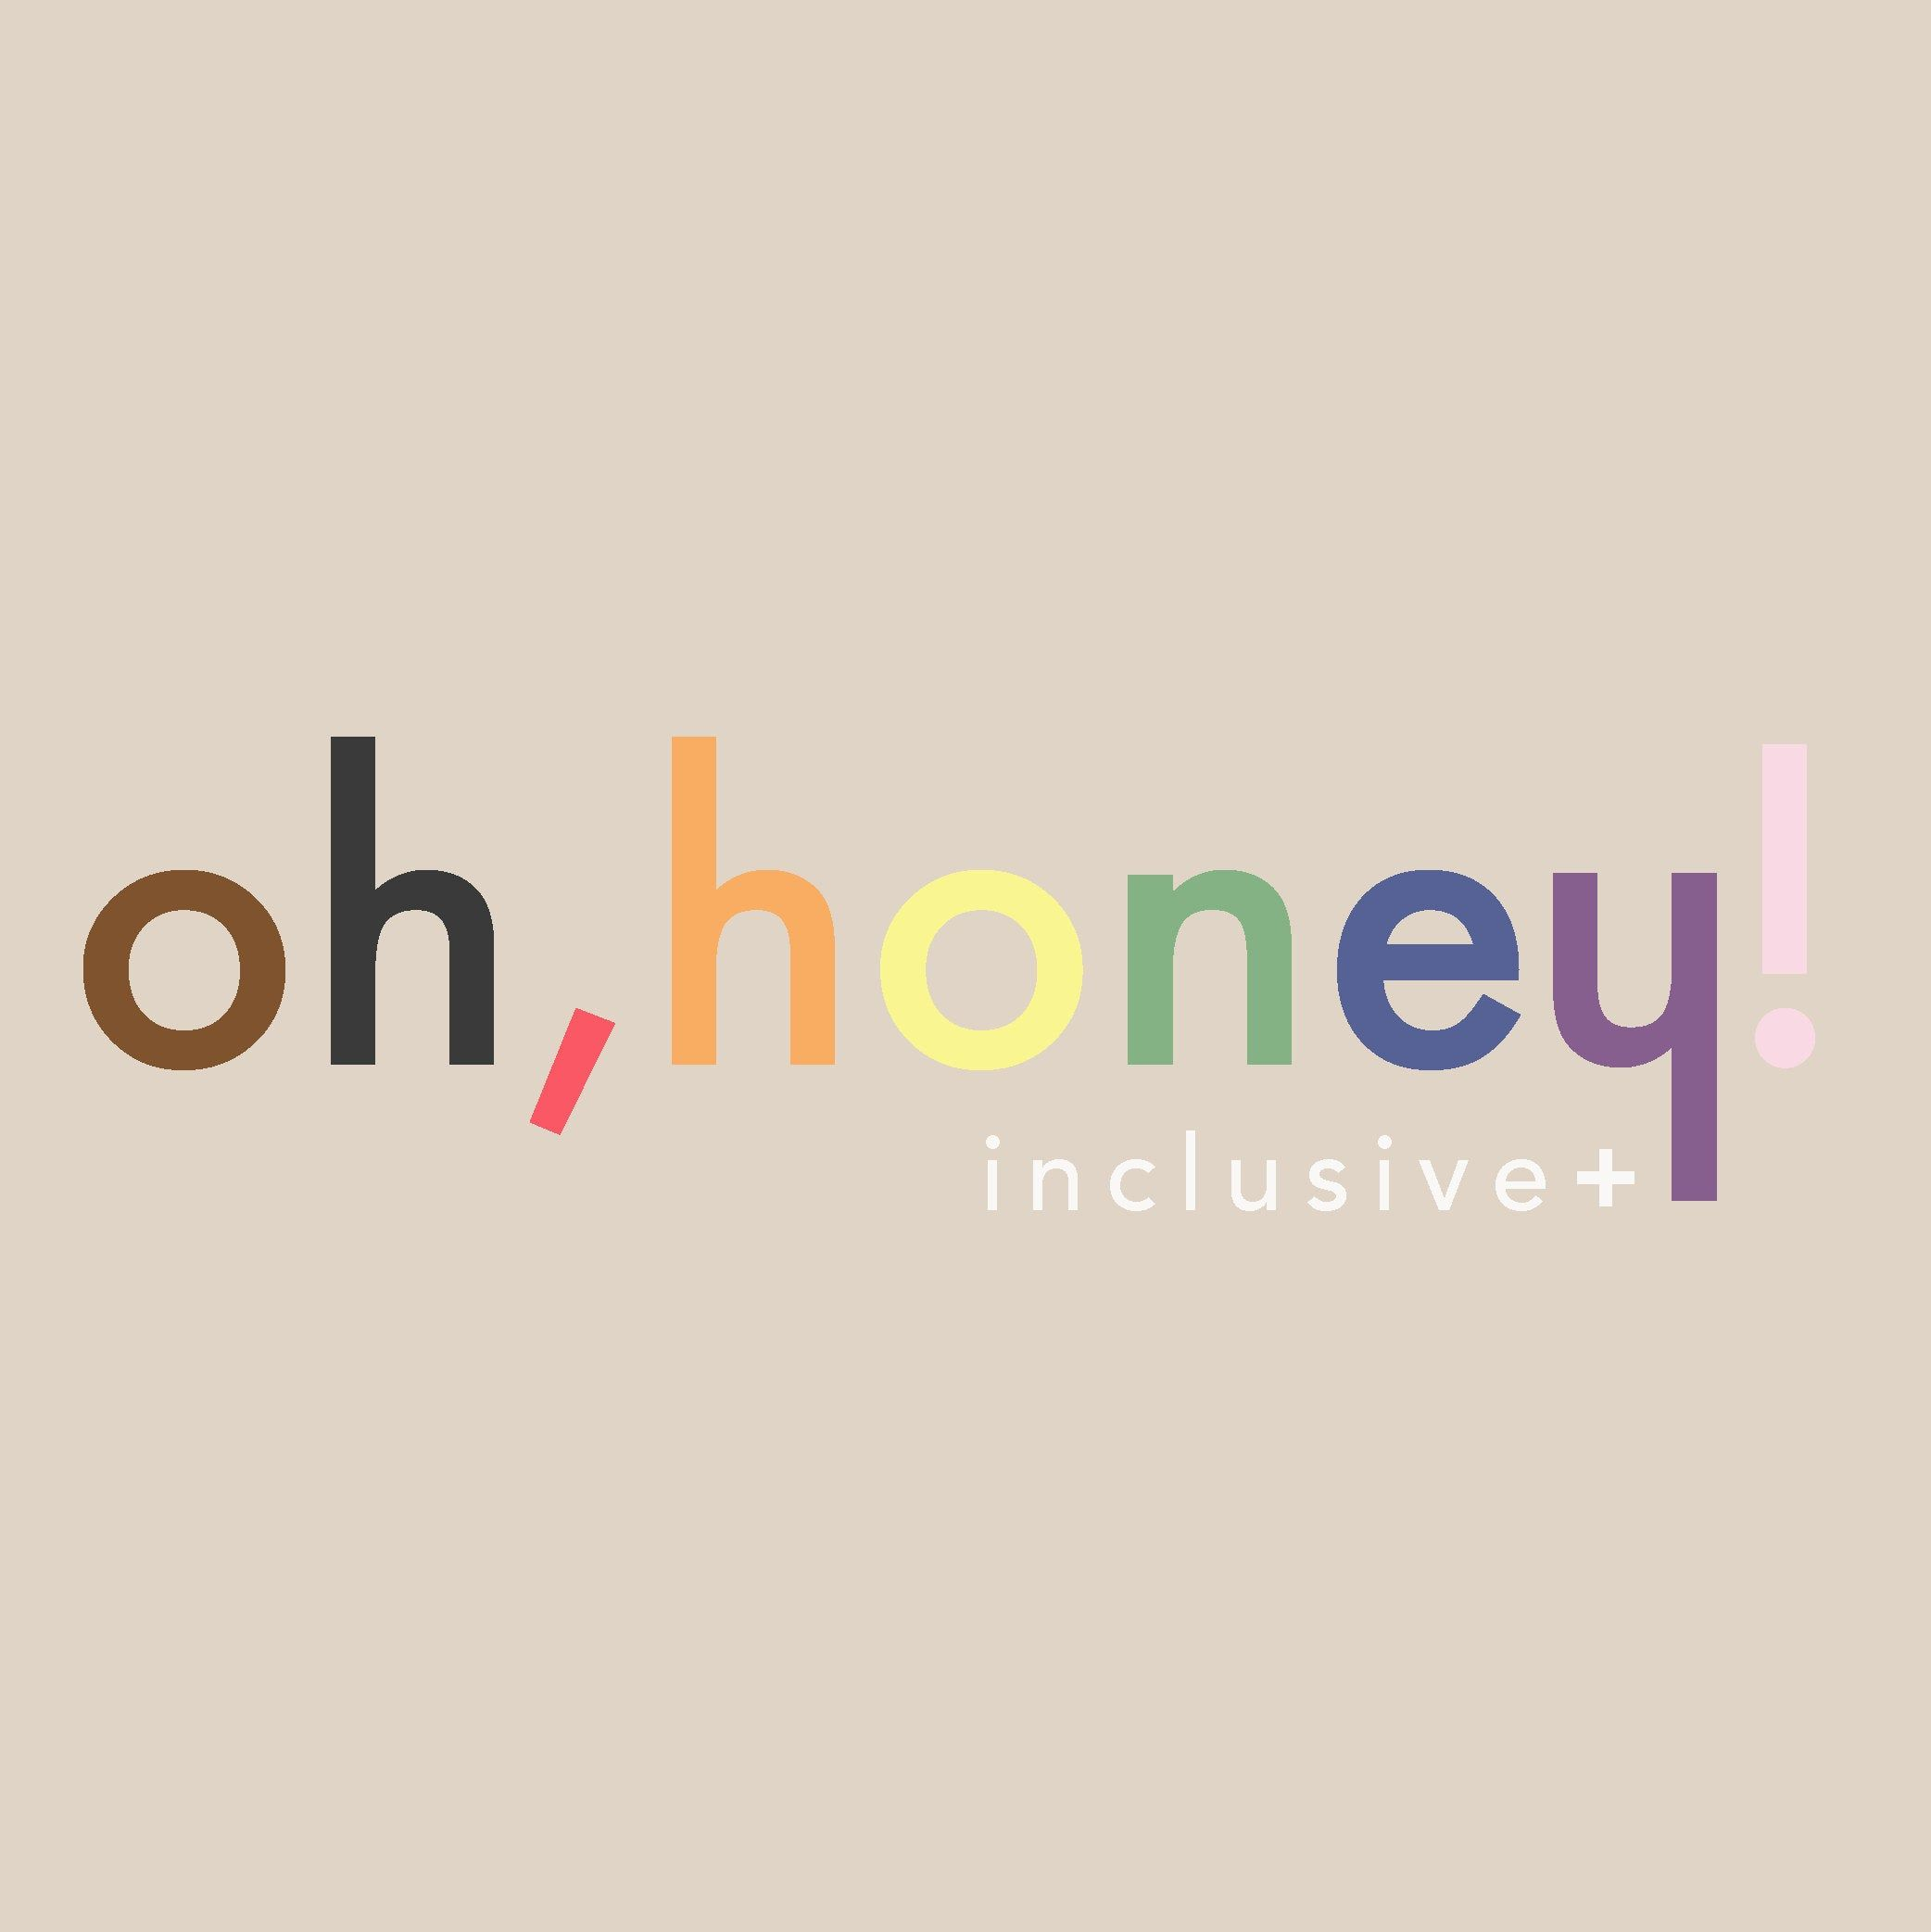 We are an all inclusive clothing brand for LGBTQ+ and allies alike. We're here to bend the lines of gender norms create a safe community and of course, look good as hell doing it ;). Welcome to oh, honey inclusive+ here you are loved! . . #lgbtq #lgbtqart #nonbinary #nonbinaryfashion #tomboyfashion #lesbianfashion #lgtbqcommunity #safeplace #graphictshirts #trendingshirts #intersex #bisexualpride #lgbtqallies #transart #transgender #transgenderpride #pansexualflag #pansexual #genderqueer #queer